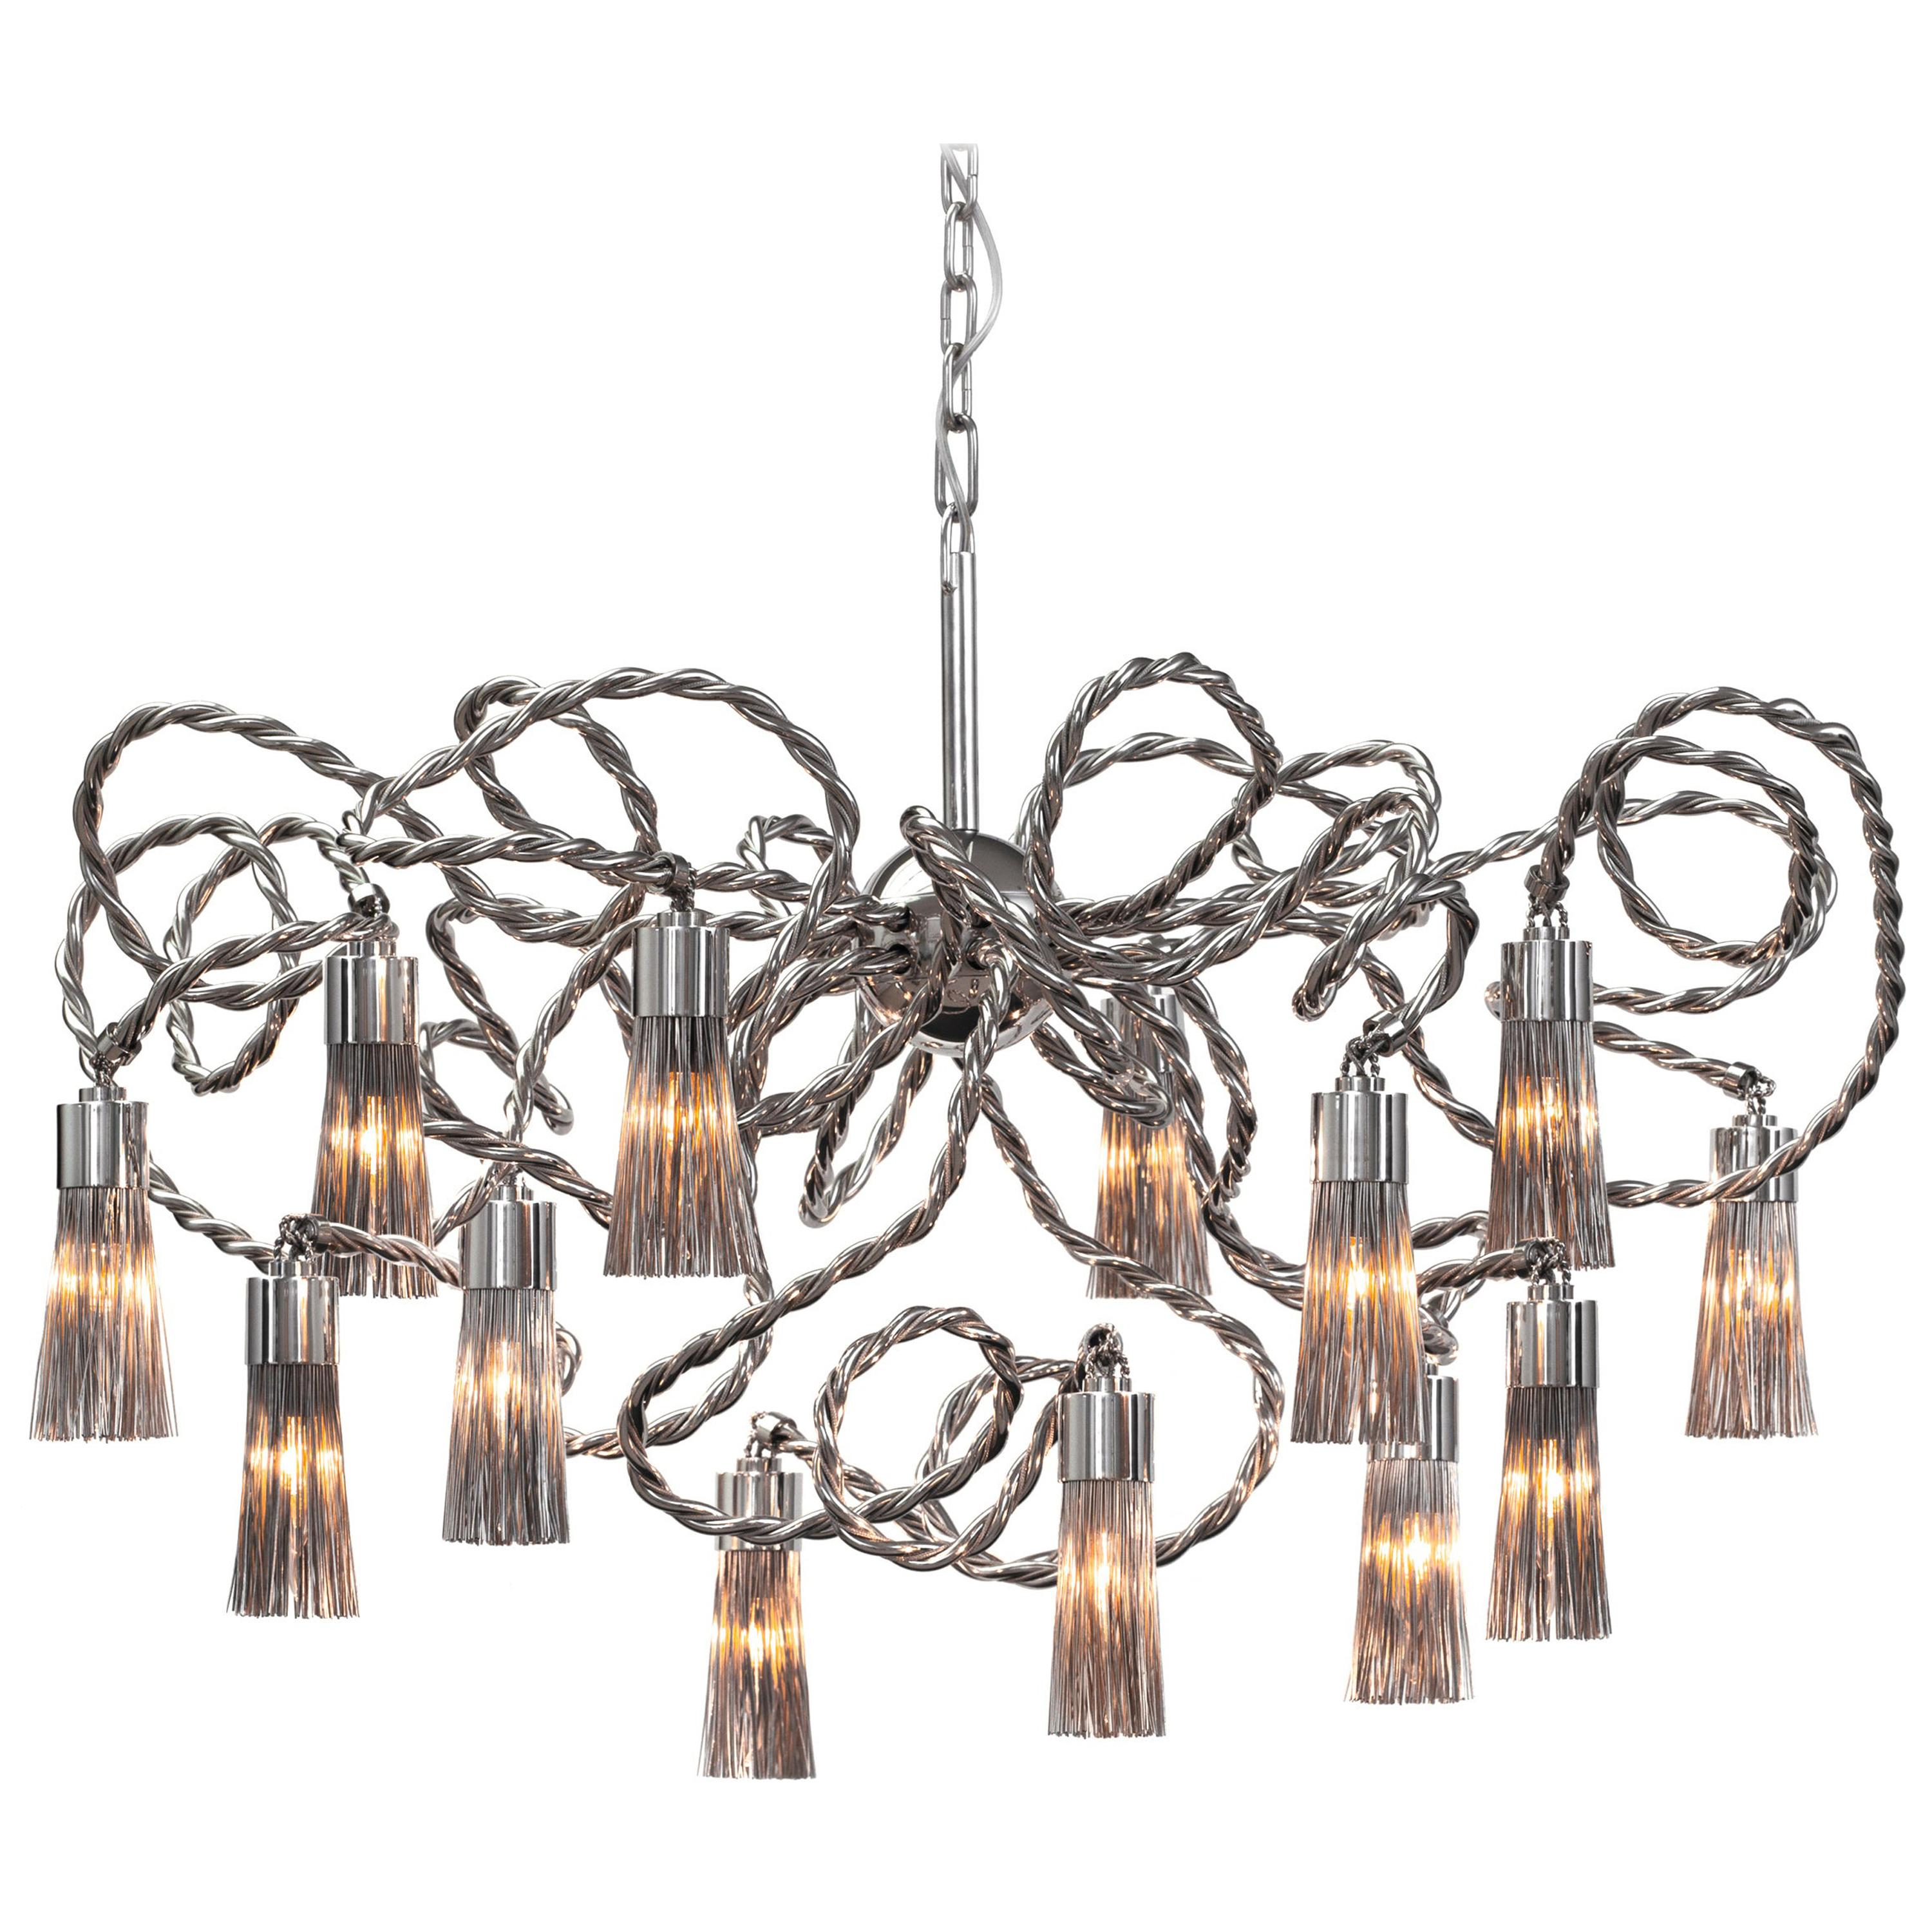 Modern Chandelier in a Nickel Finish, Sultans of Swing Collection, by Brand